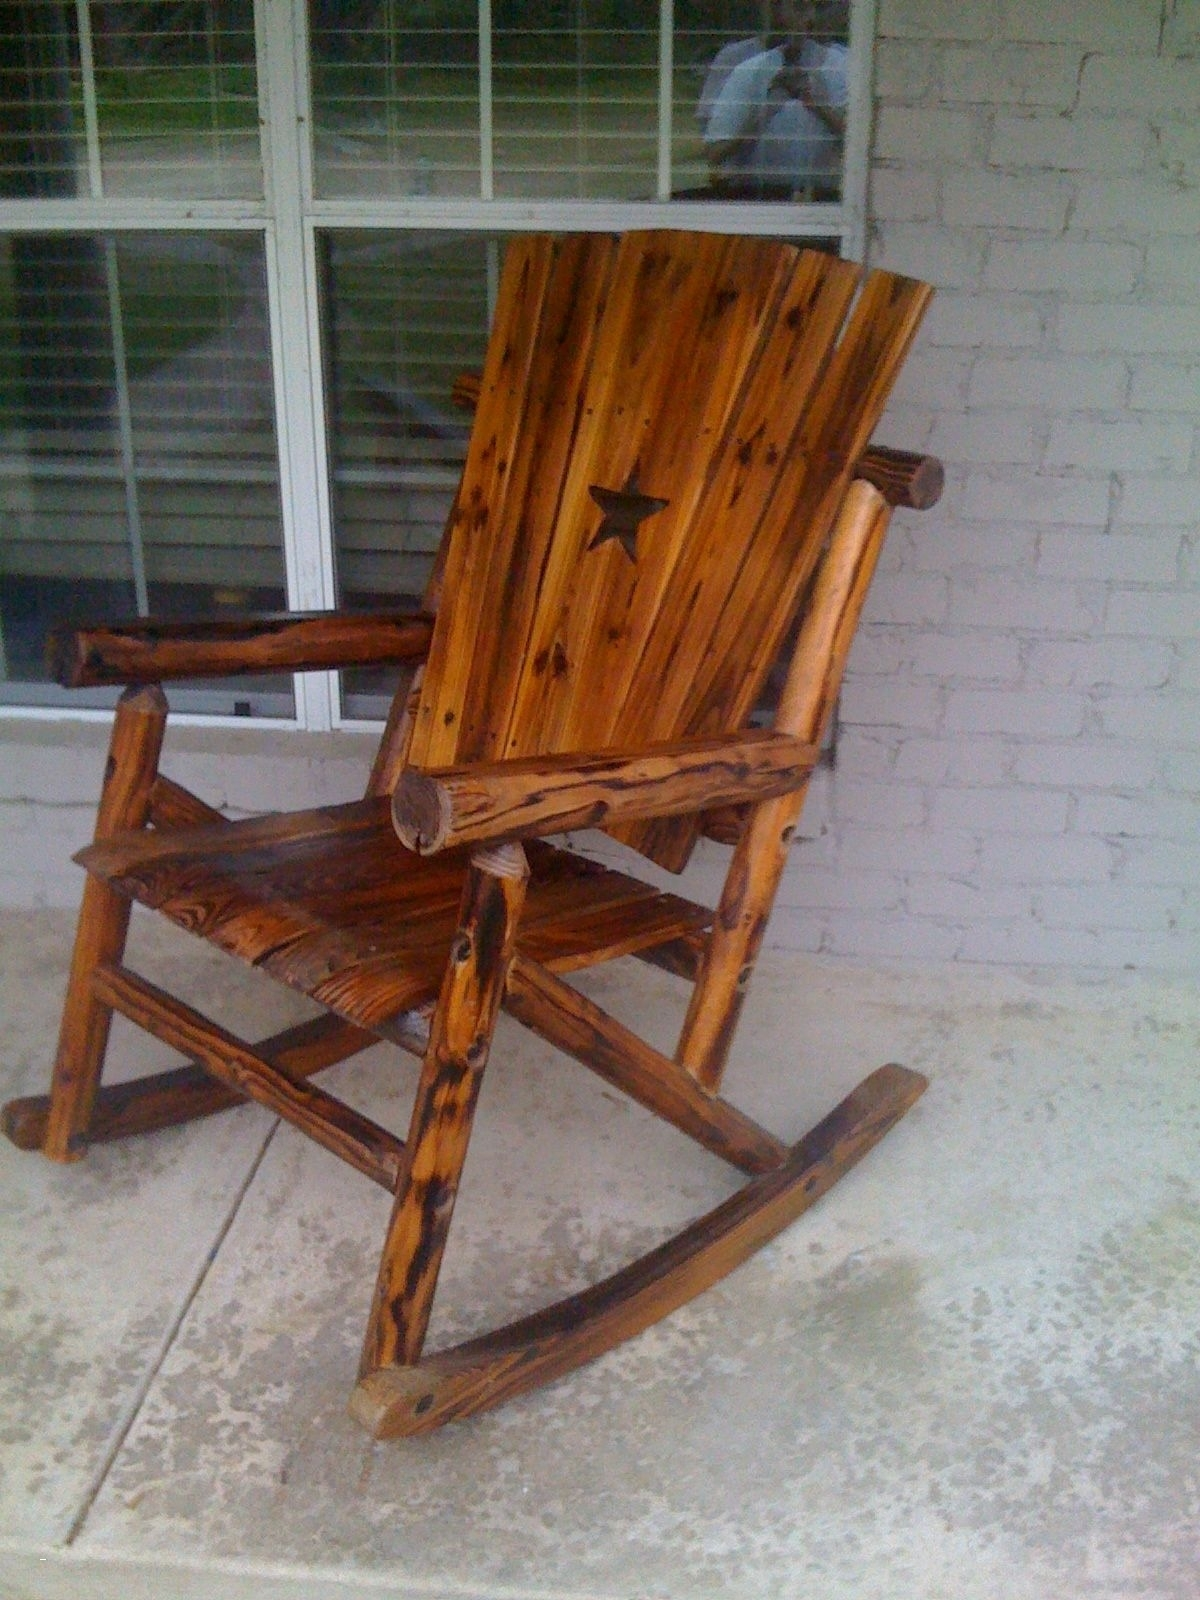 Best Of Wooden Outside Rocking Chairs – Designsolutions Usa With Rocking Chairs For Outside (#3 of 15)